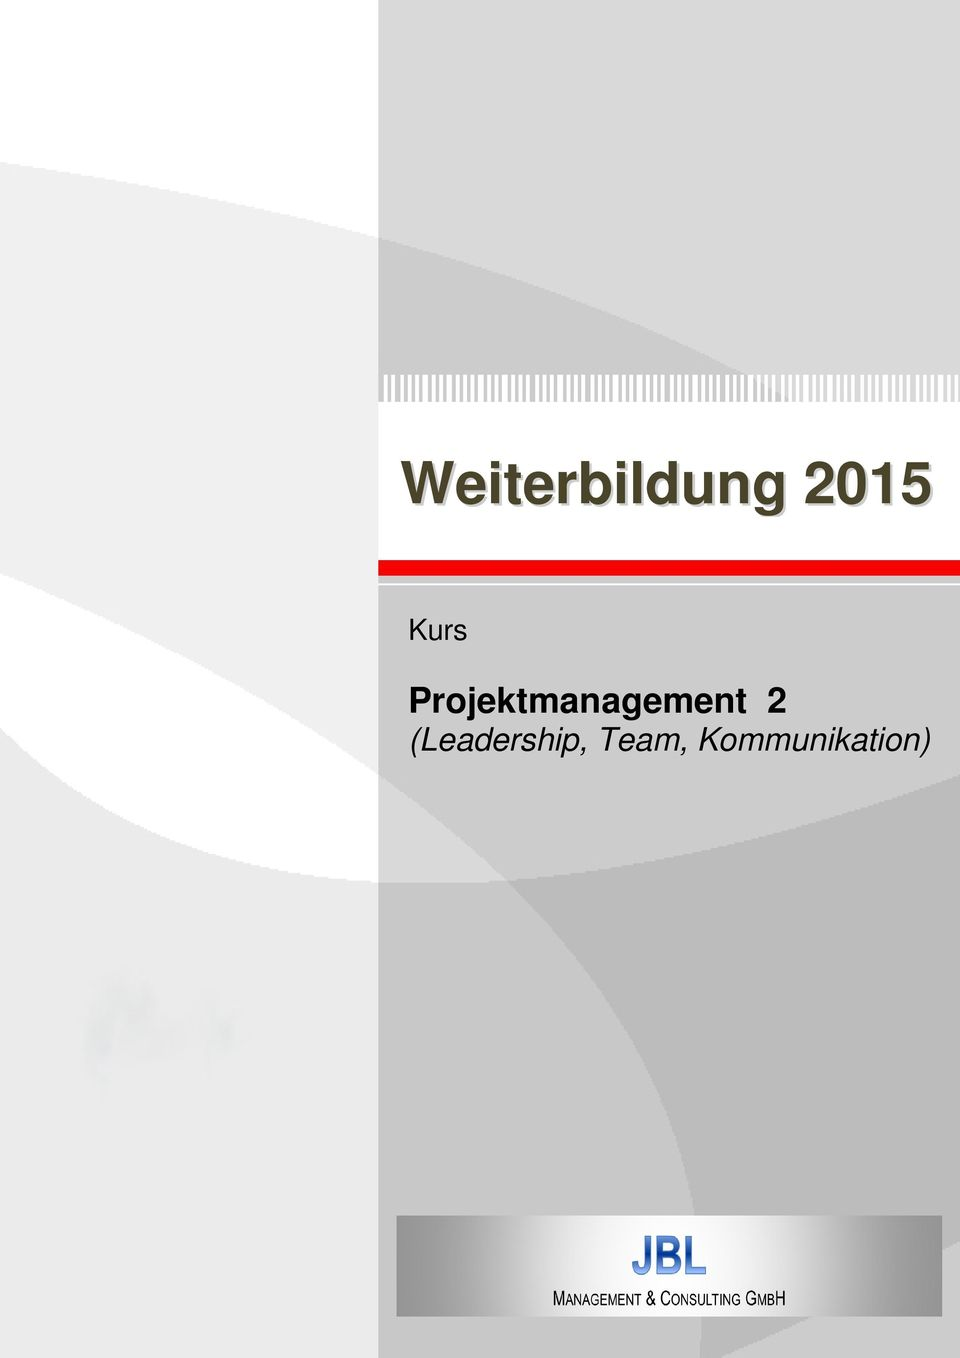 Projektmanagement 2